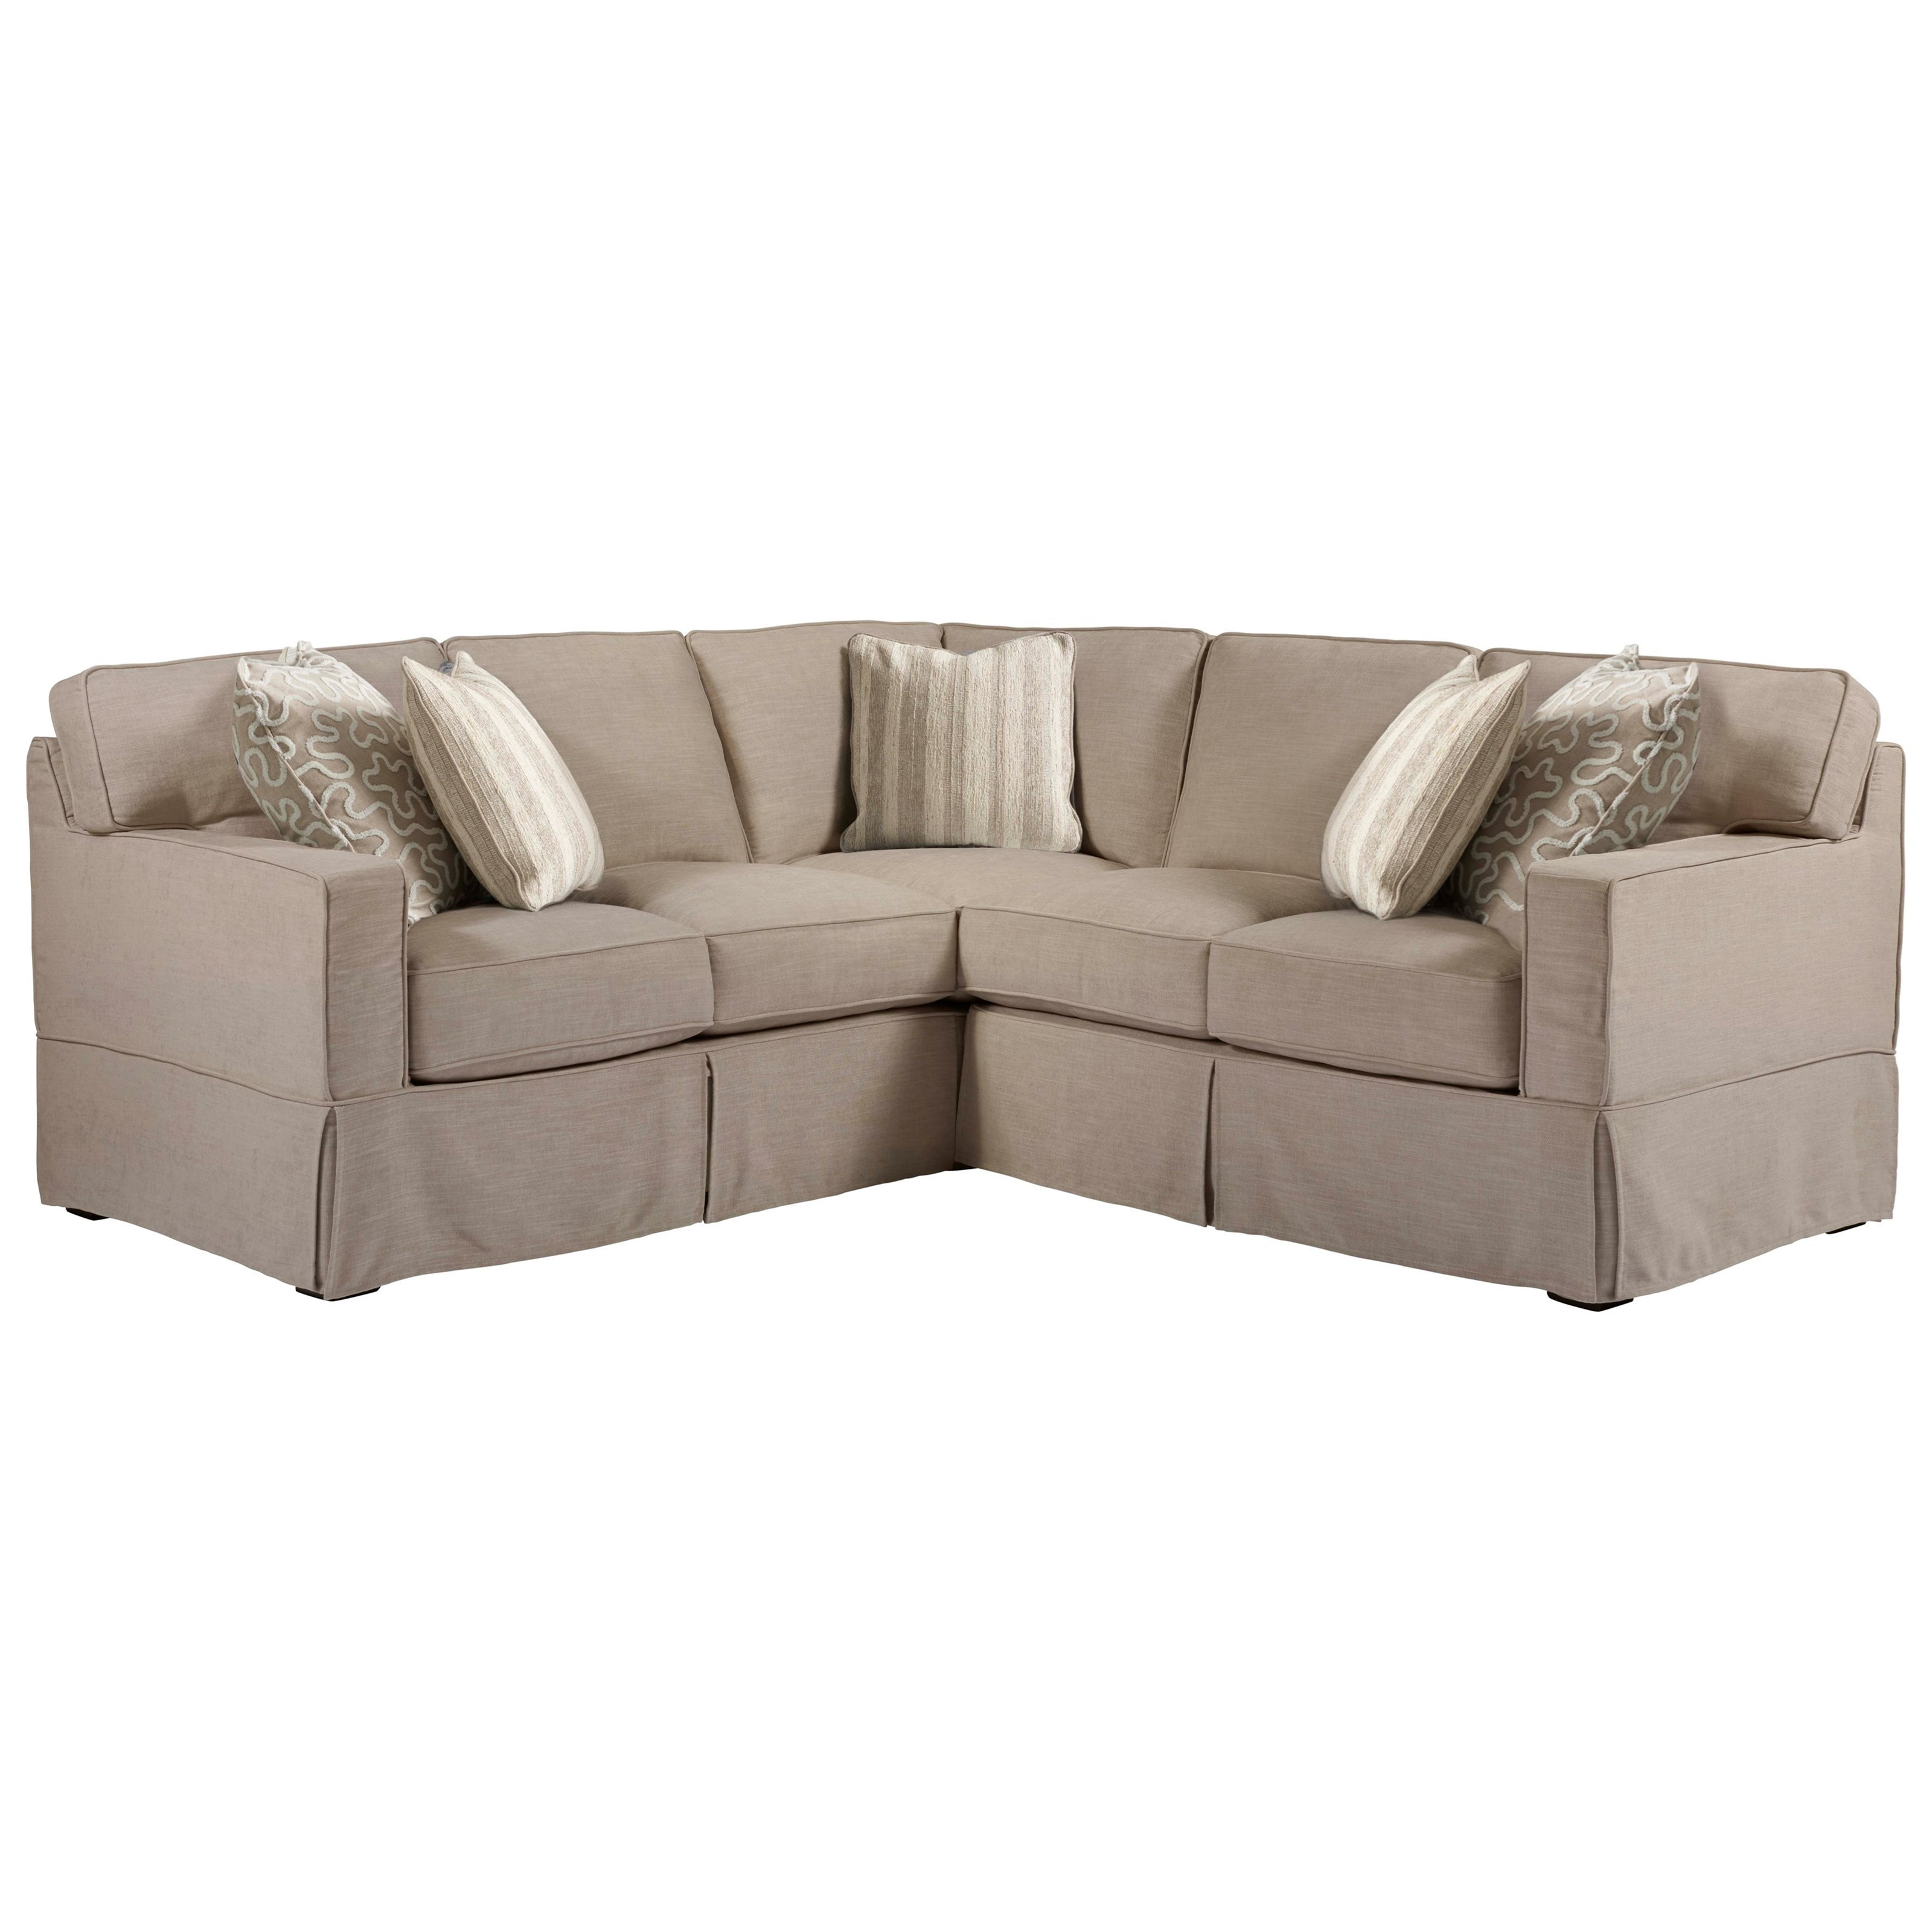 Coastal Living Home - Escape Chatham Left Arm Sectional by Universal at Baer's Furniture